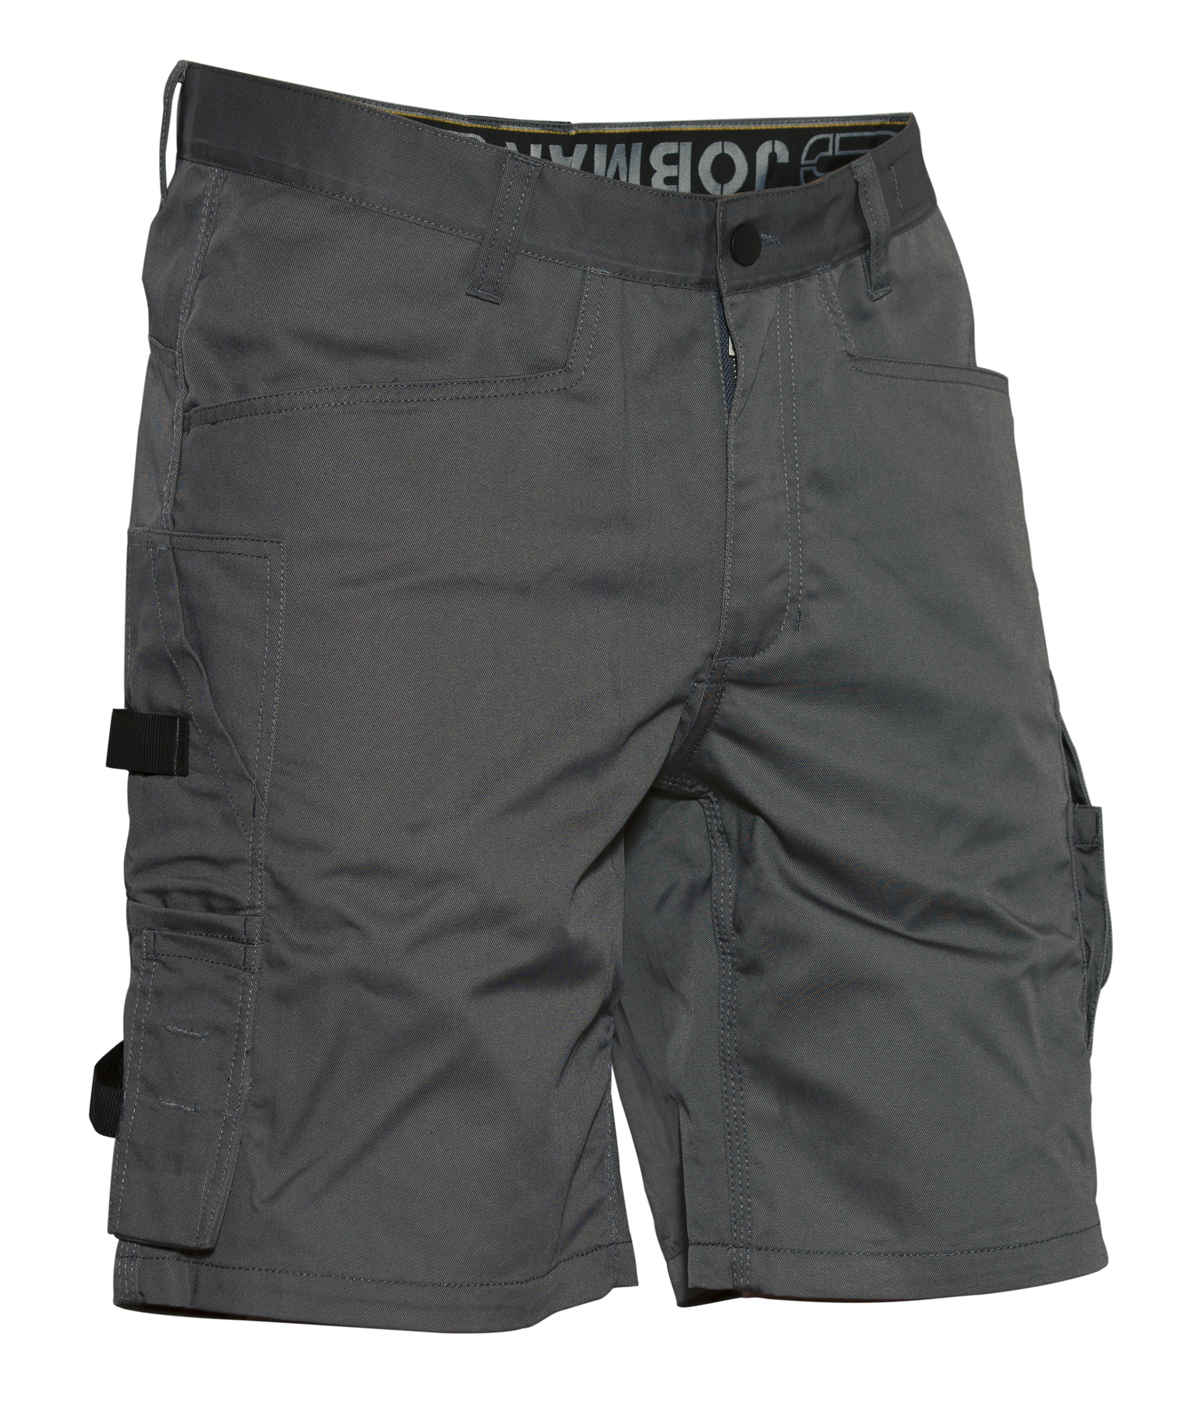 JOBMAN Service Work Shorts- 2433